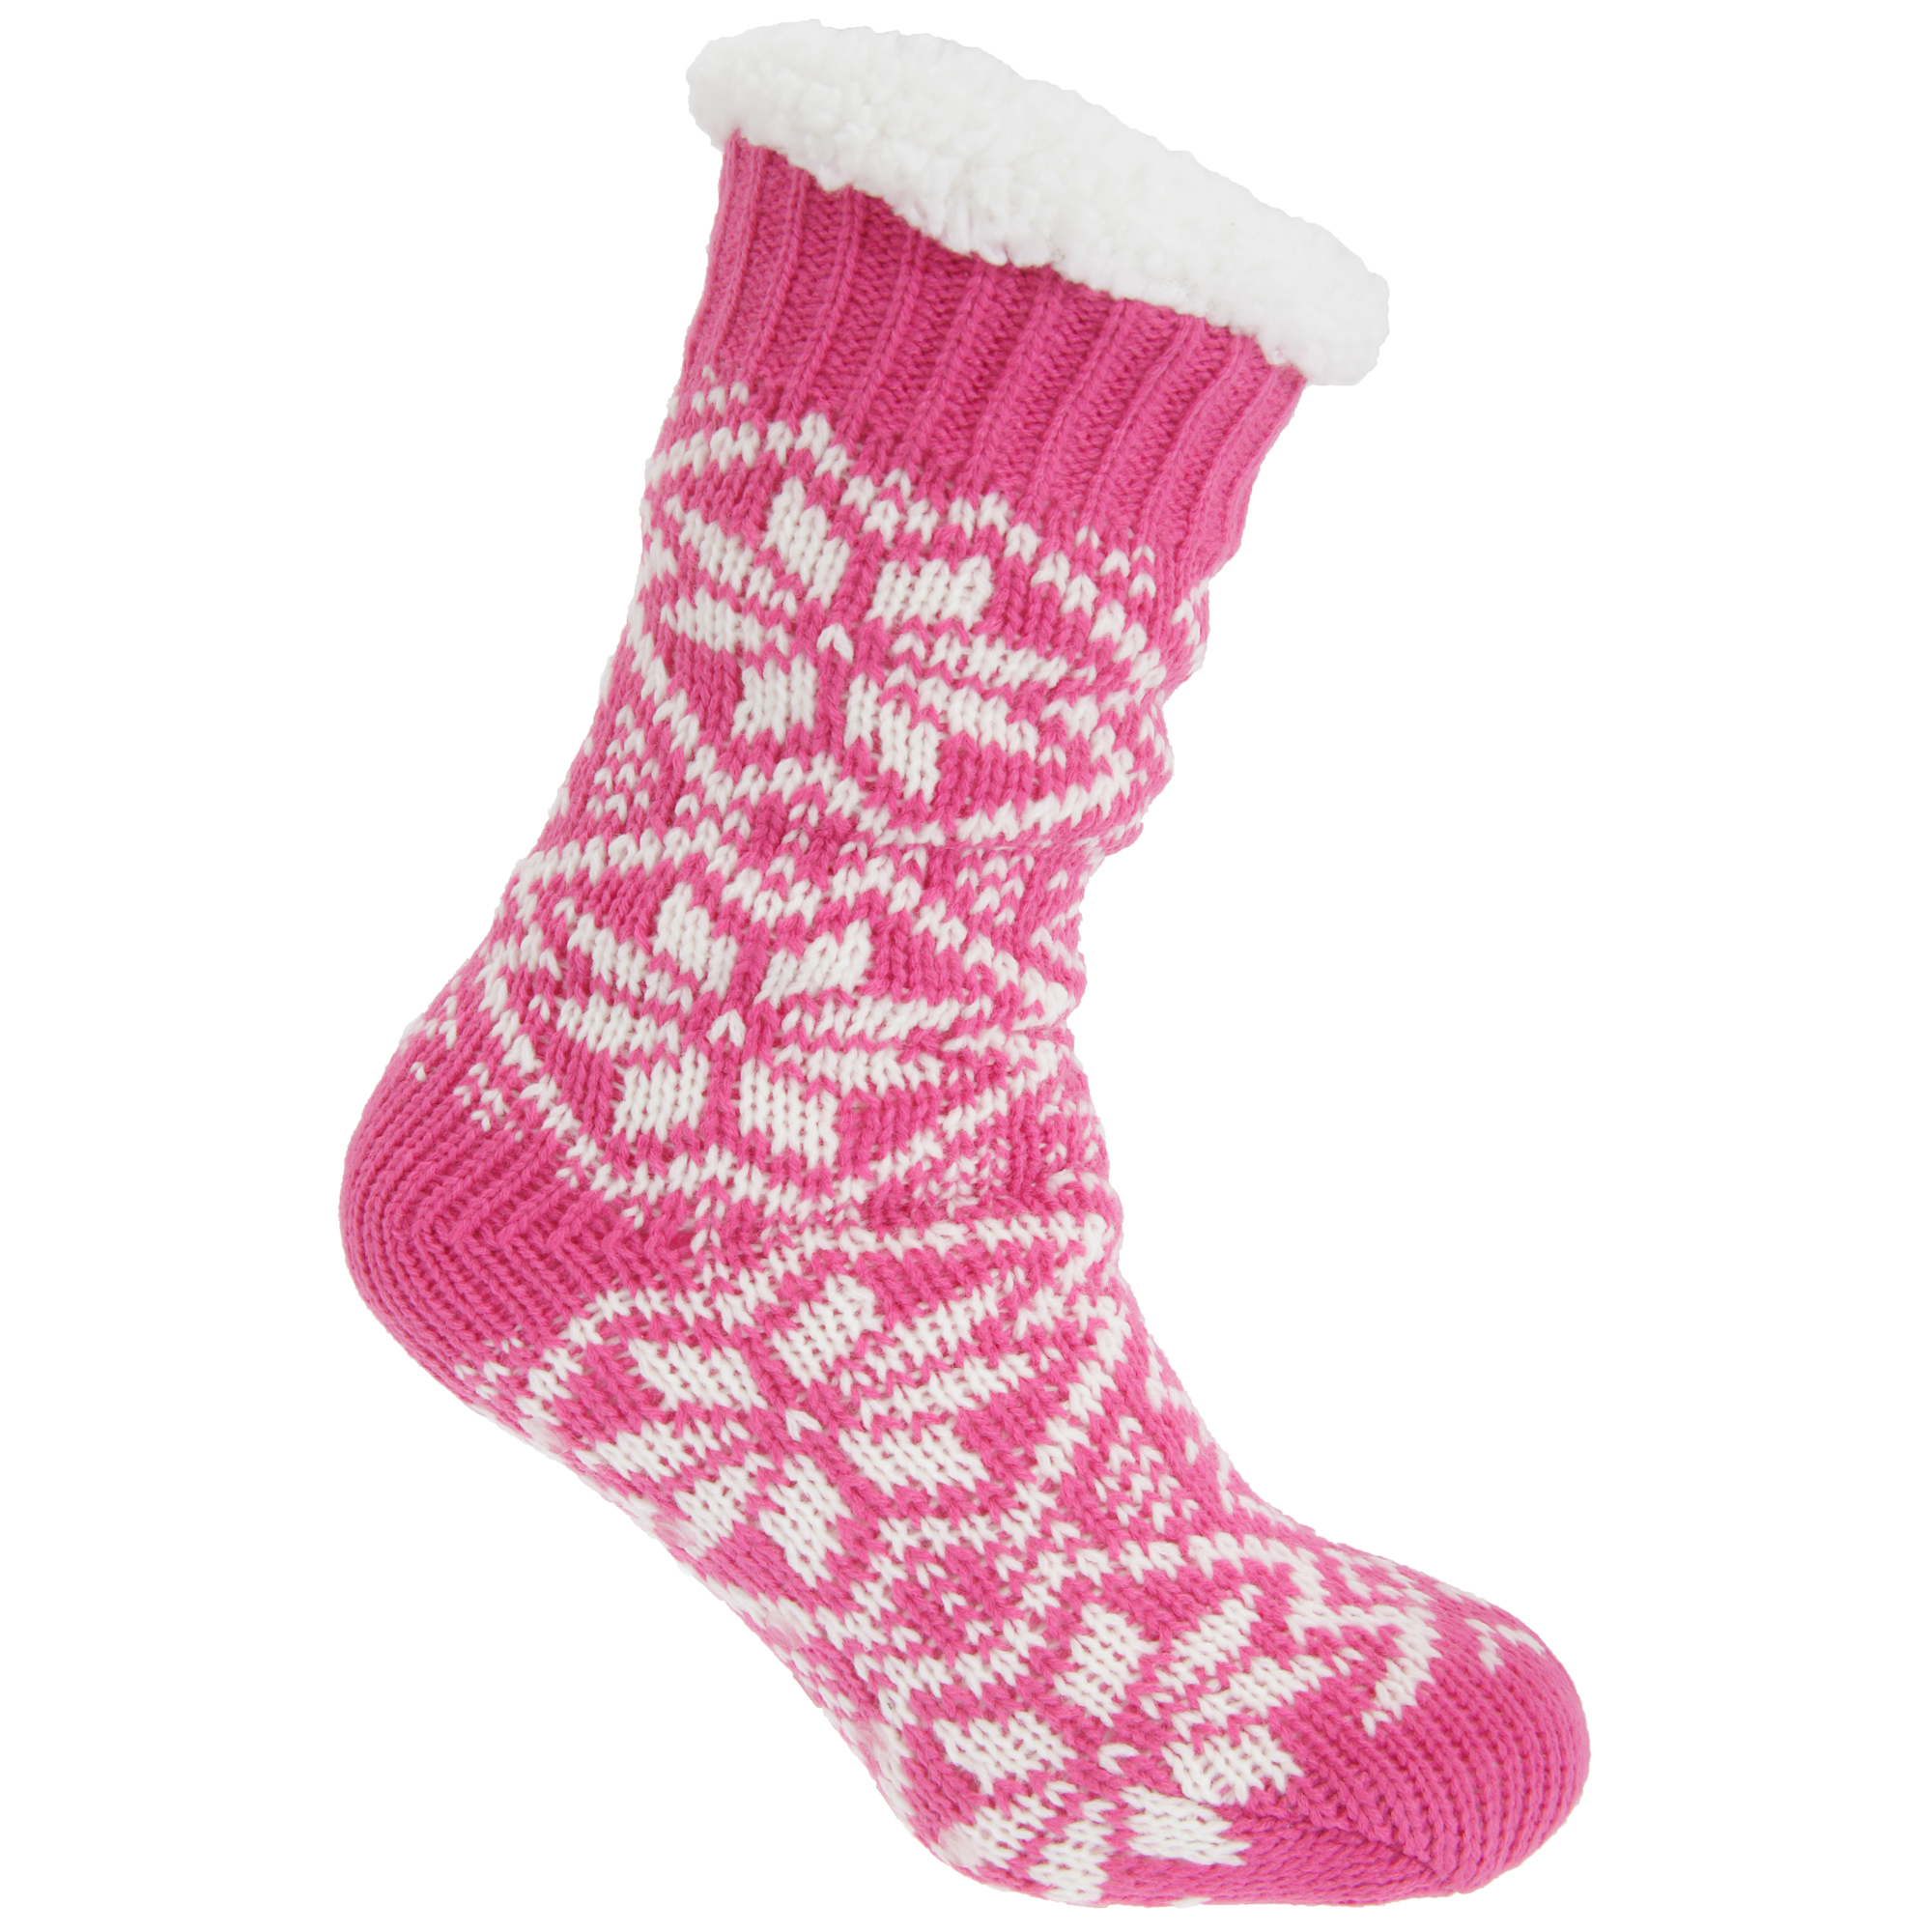 Co-zees Womens/Ladies Chunky Knit Long Lounge Slipper Socks With Grip | EBay